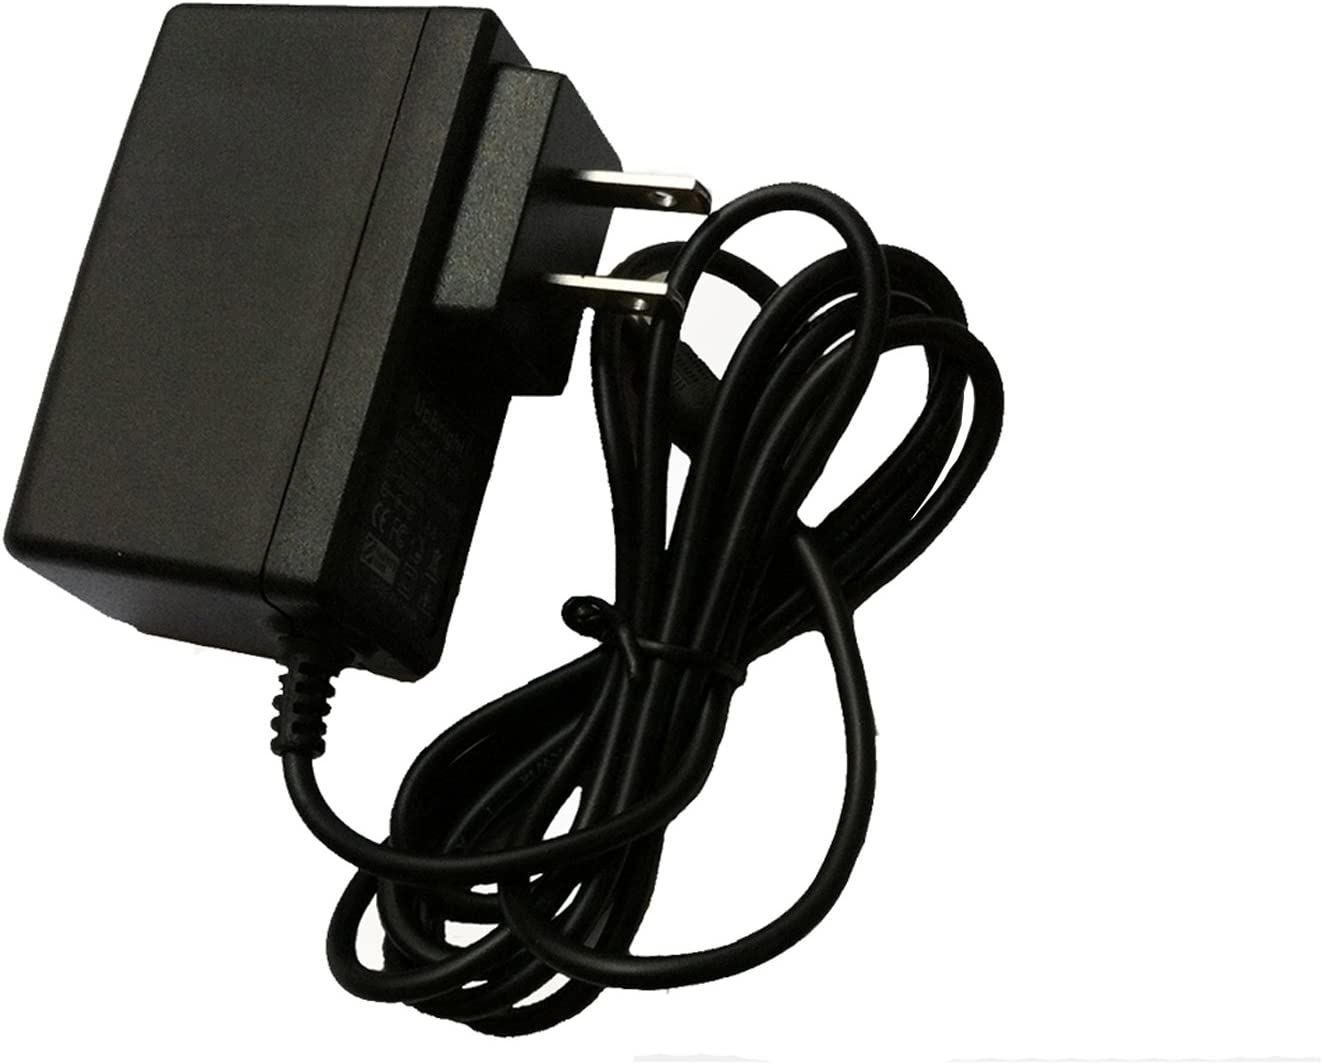 UpBright 7V-7.5V AC//DC Adapter Replacement for Sharp UADP-0312TAZZ UADP-0340TAZZ VL-10U VL-A10U VL-AH60U VL-AH130U Hi8 BT-H11 BT-H21 VR-33CH/Canon CA-PS700 ACK-DC50 G10 G11 G12 SX30 7VDC Power Charger